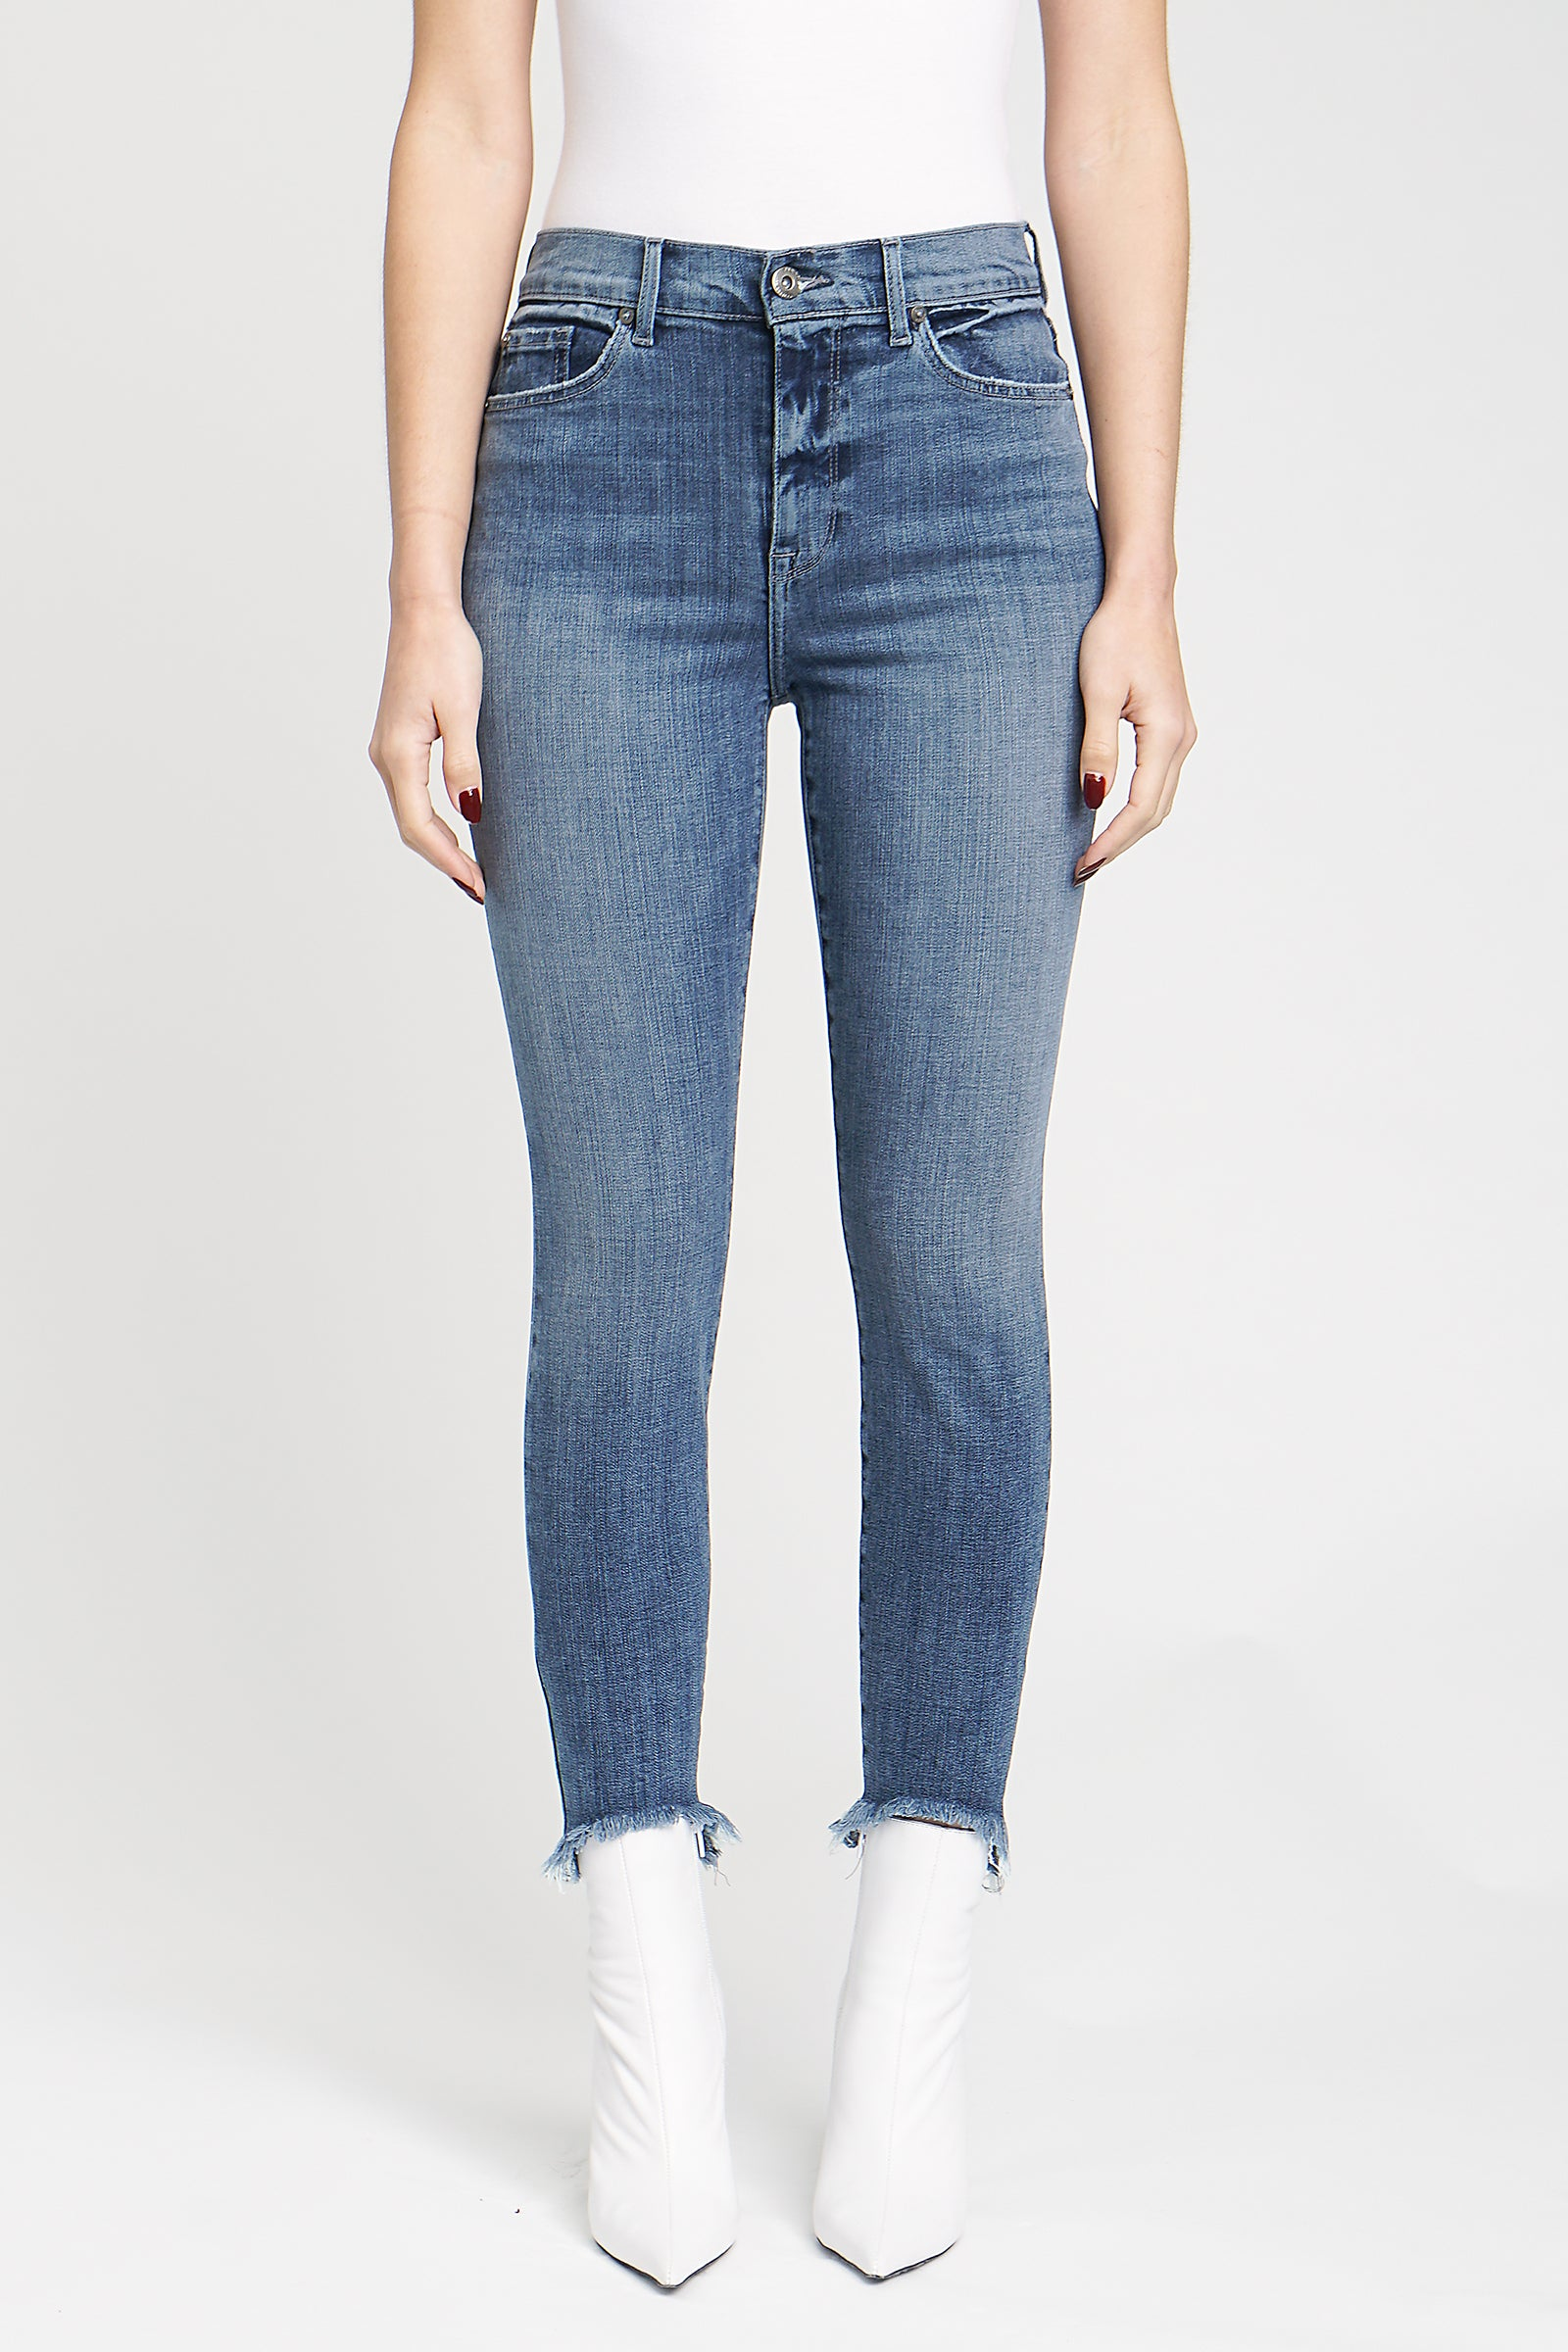 Aline High Rise Skinny - Venice Breeze